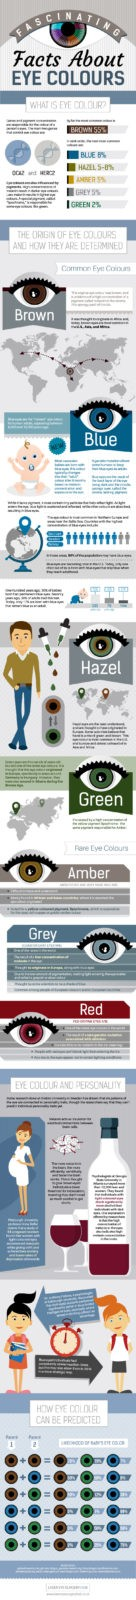 Infographic: Fascinating Facts About Eye Colours FINAL What Determines Your Eye Colour